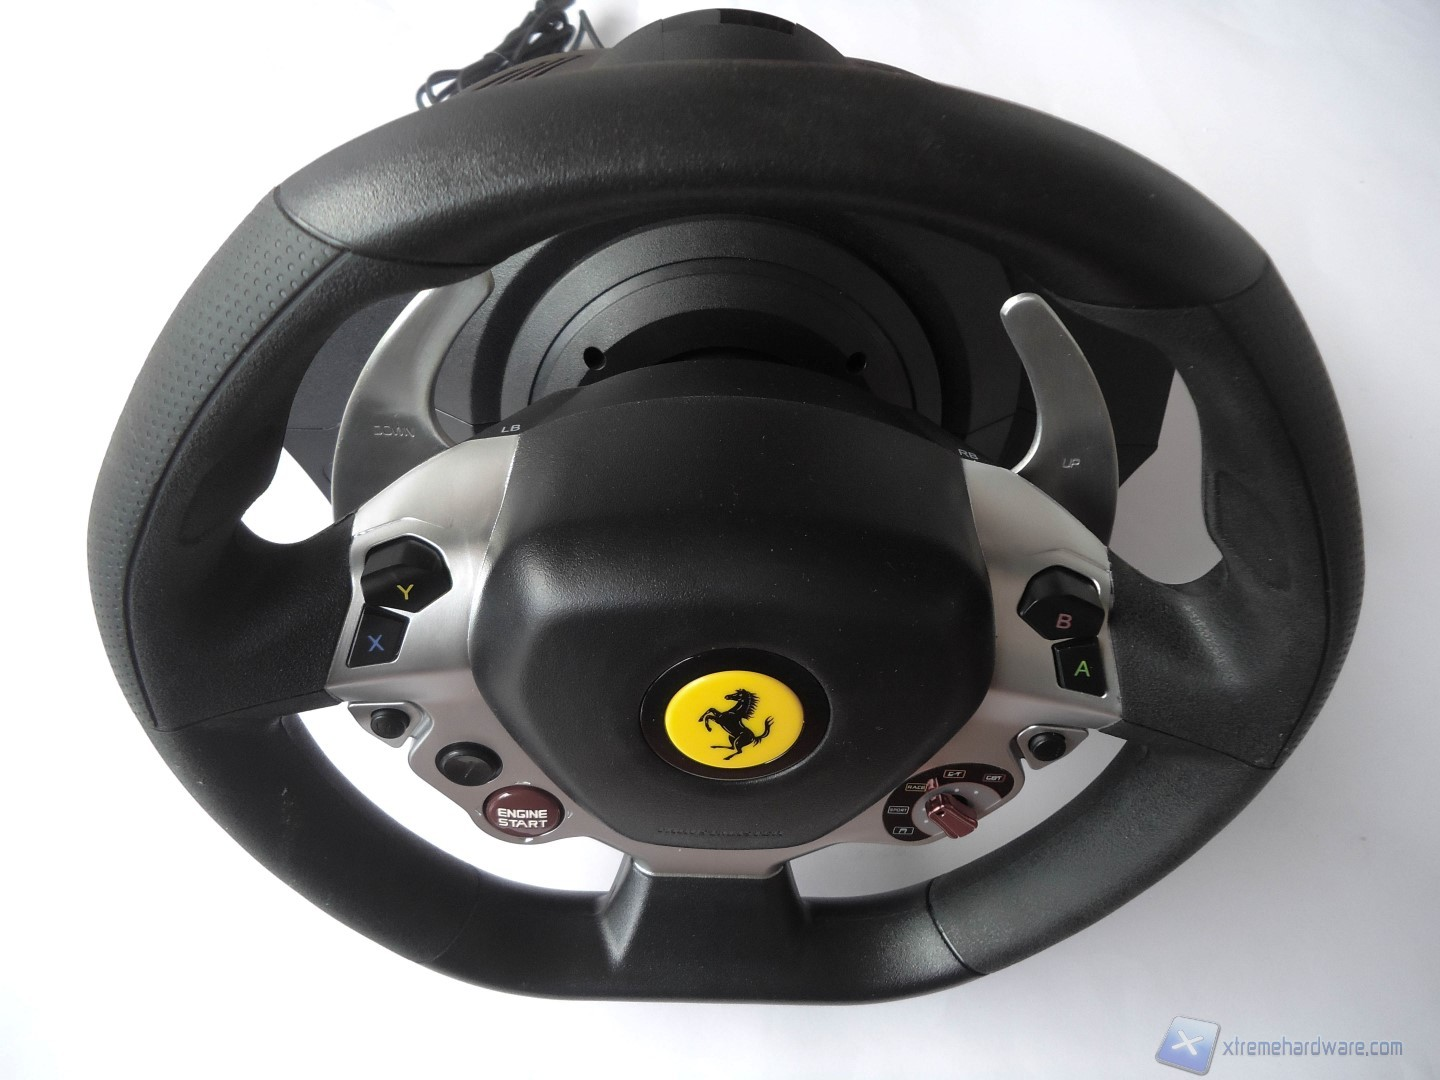 Thrustmaster TX Racing Wheel Ferrari 458 Italia Edition, Force Feedback Next-Gen